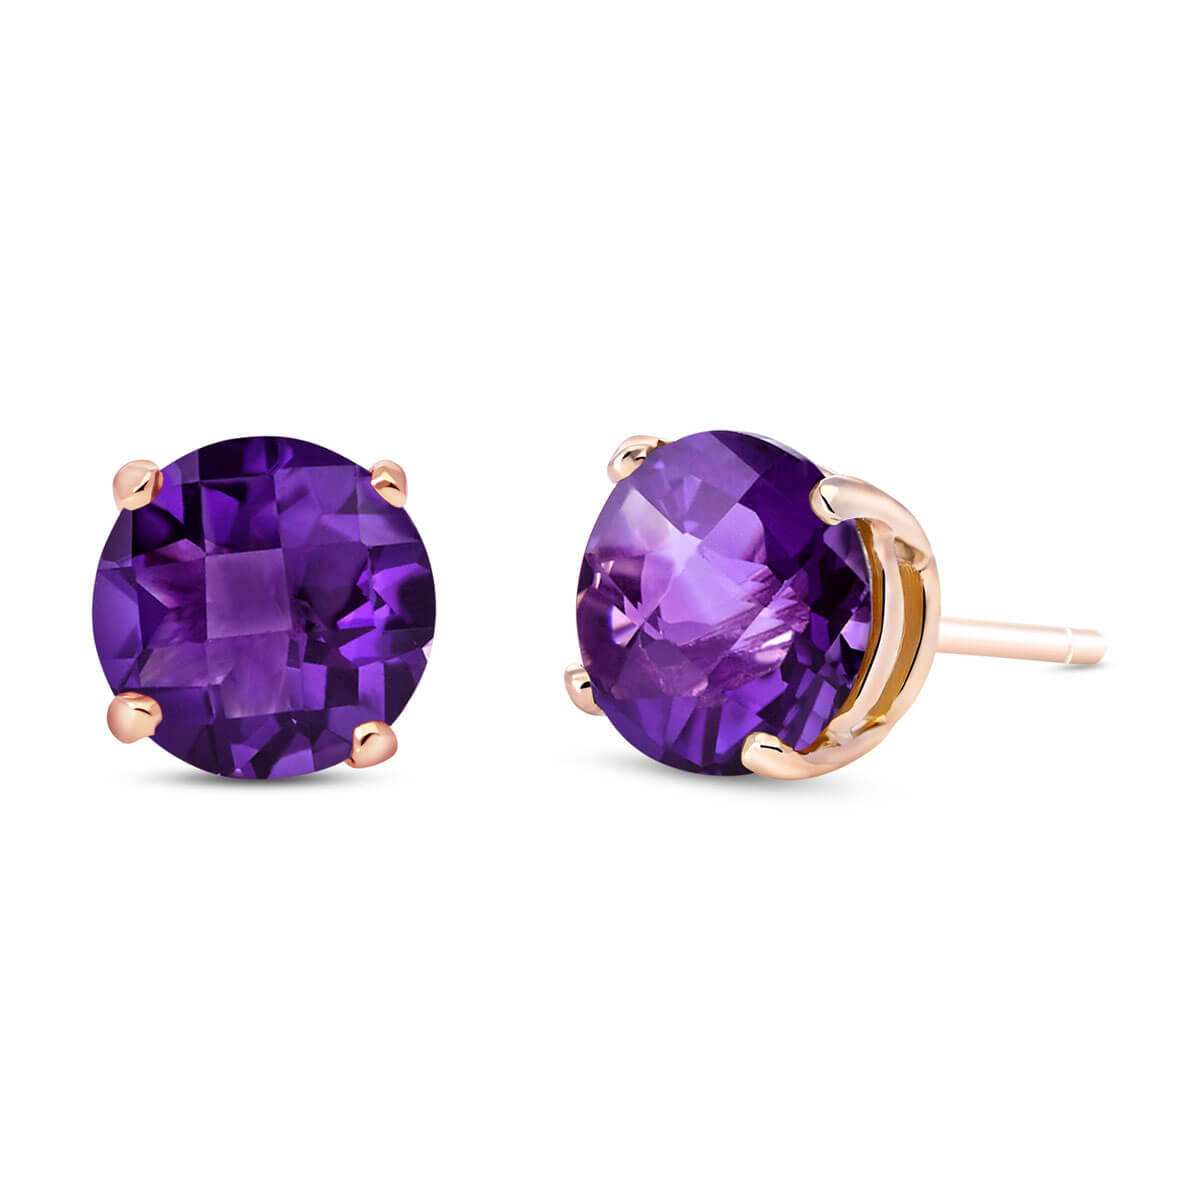 Amethyst Stud Earrings 3.1 ctw in 9ct Rose Gold